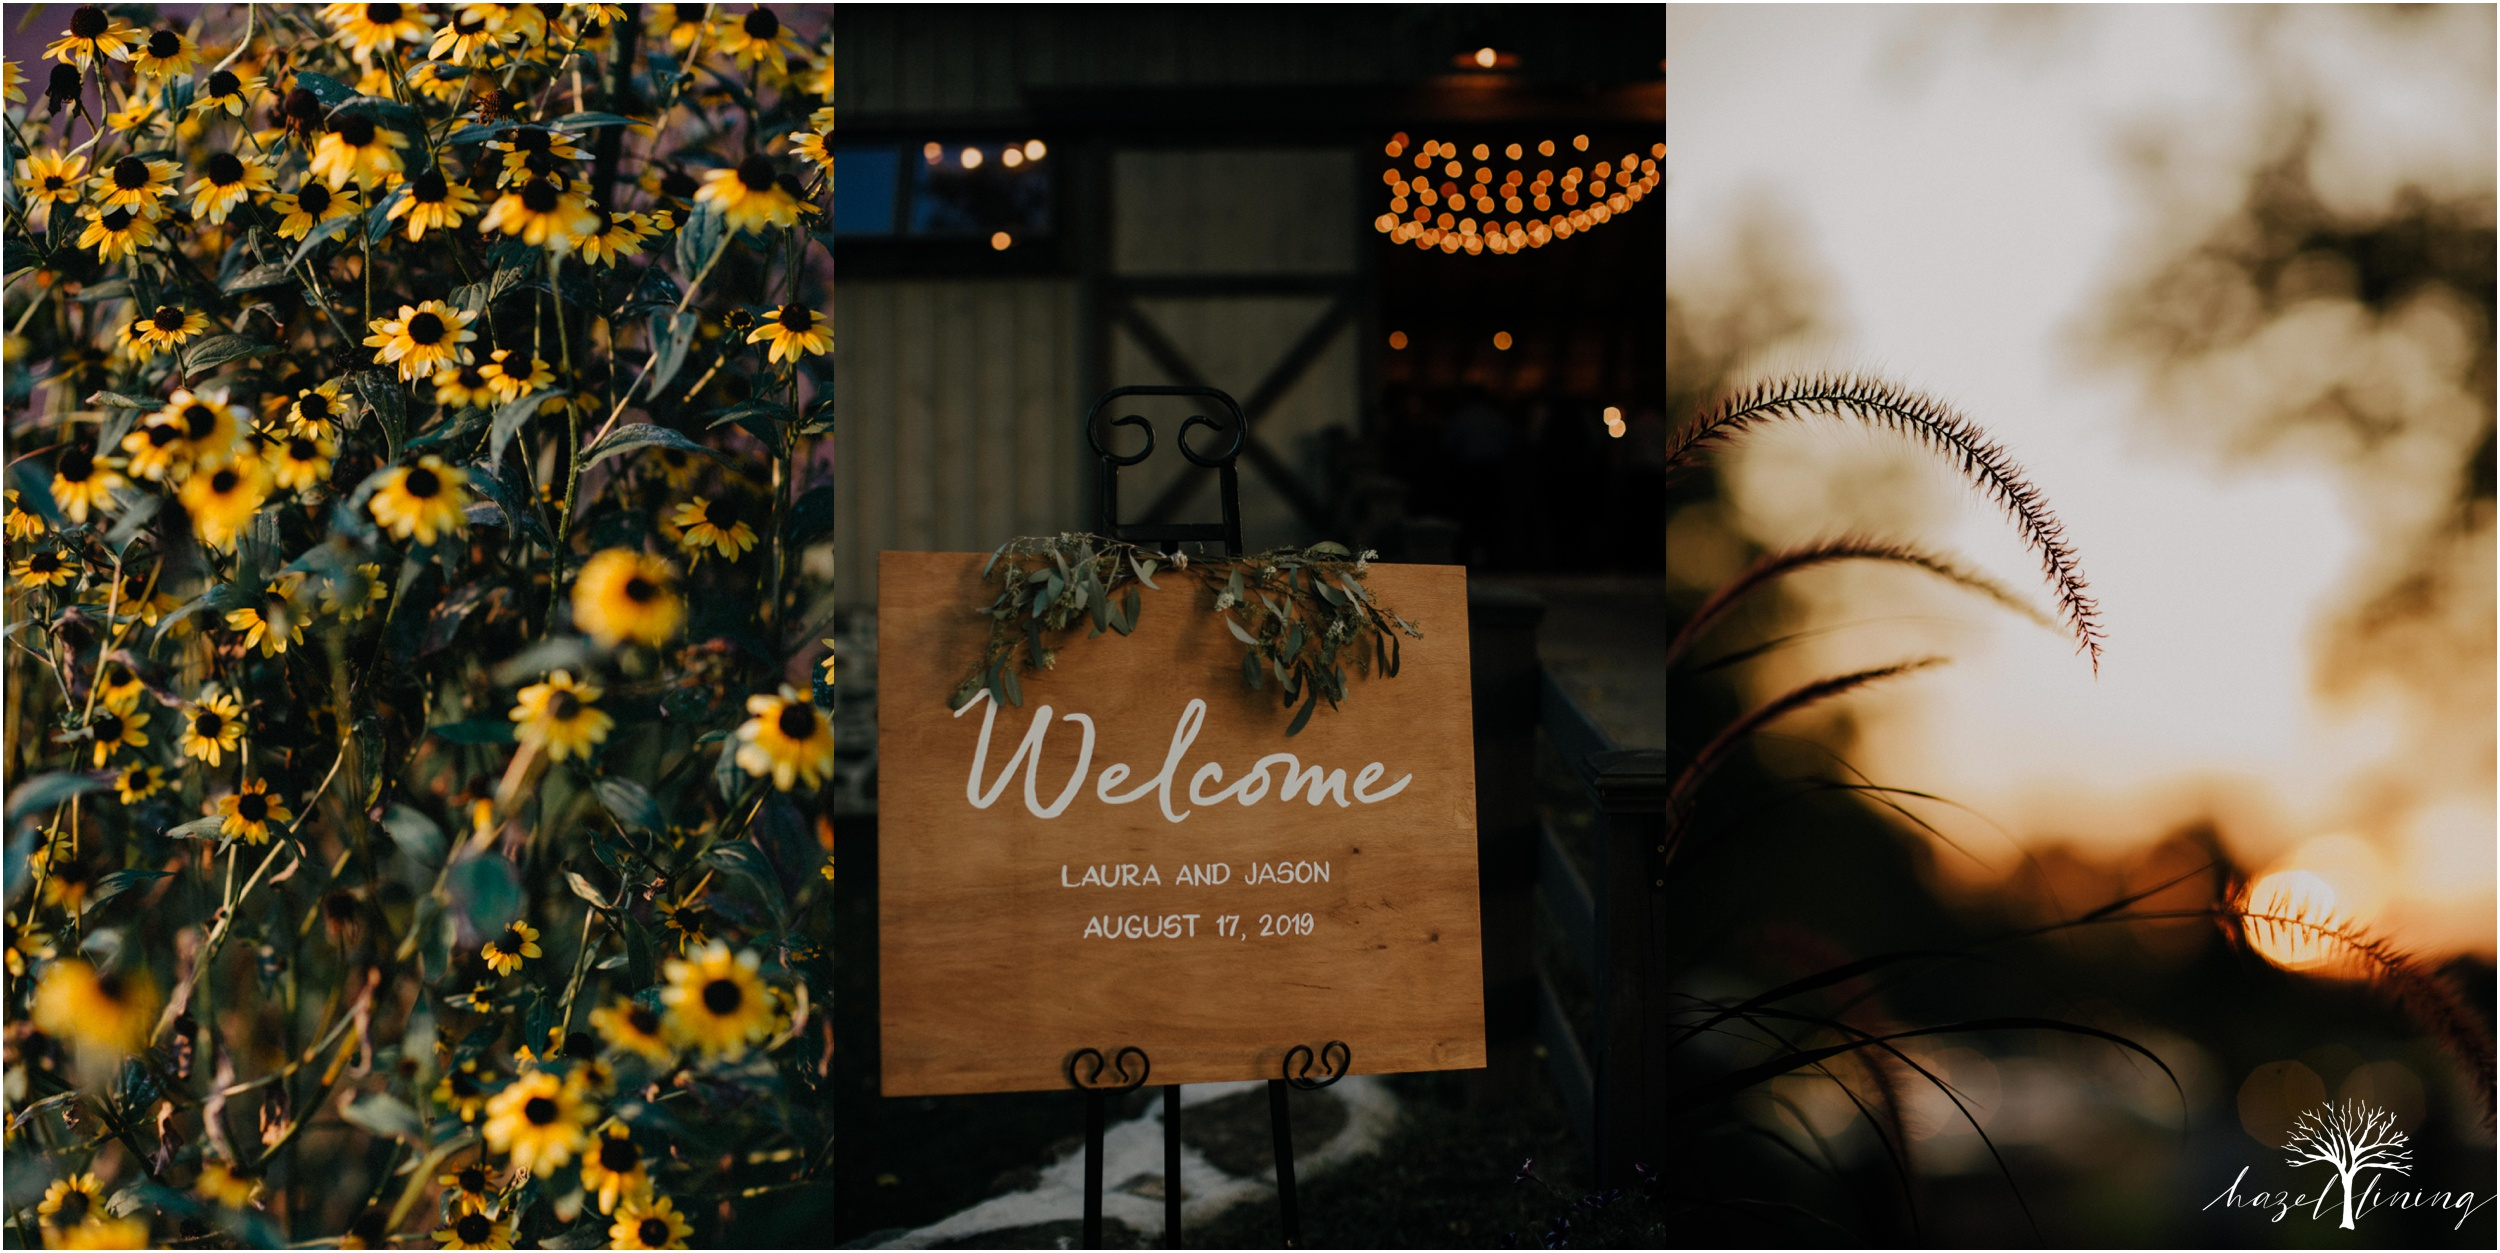 jason-tercha-laura-caruso-the-farm-bakery-and-events-quakertown-pa-summer-wedding-hazel-lining-photography-destination-elopement-wedding-engagement-photography_0136.jpg